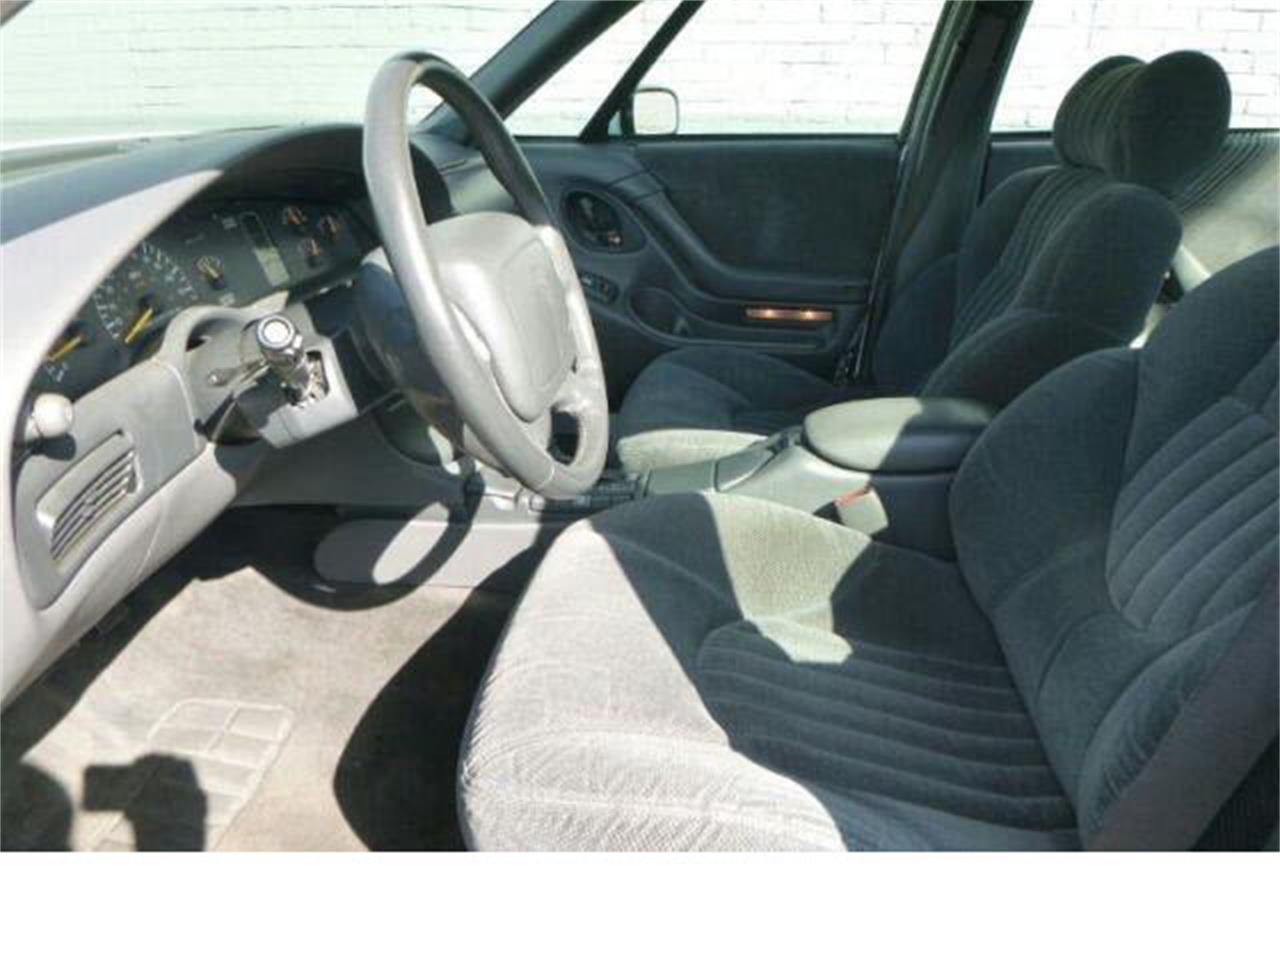 Large Picture of 1998 Pontiac Bonneville located in Tacoma Washington - $3,990.00 - M5Q6